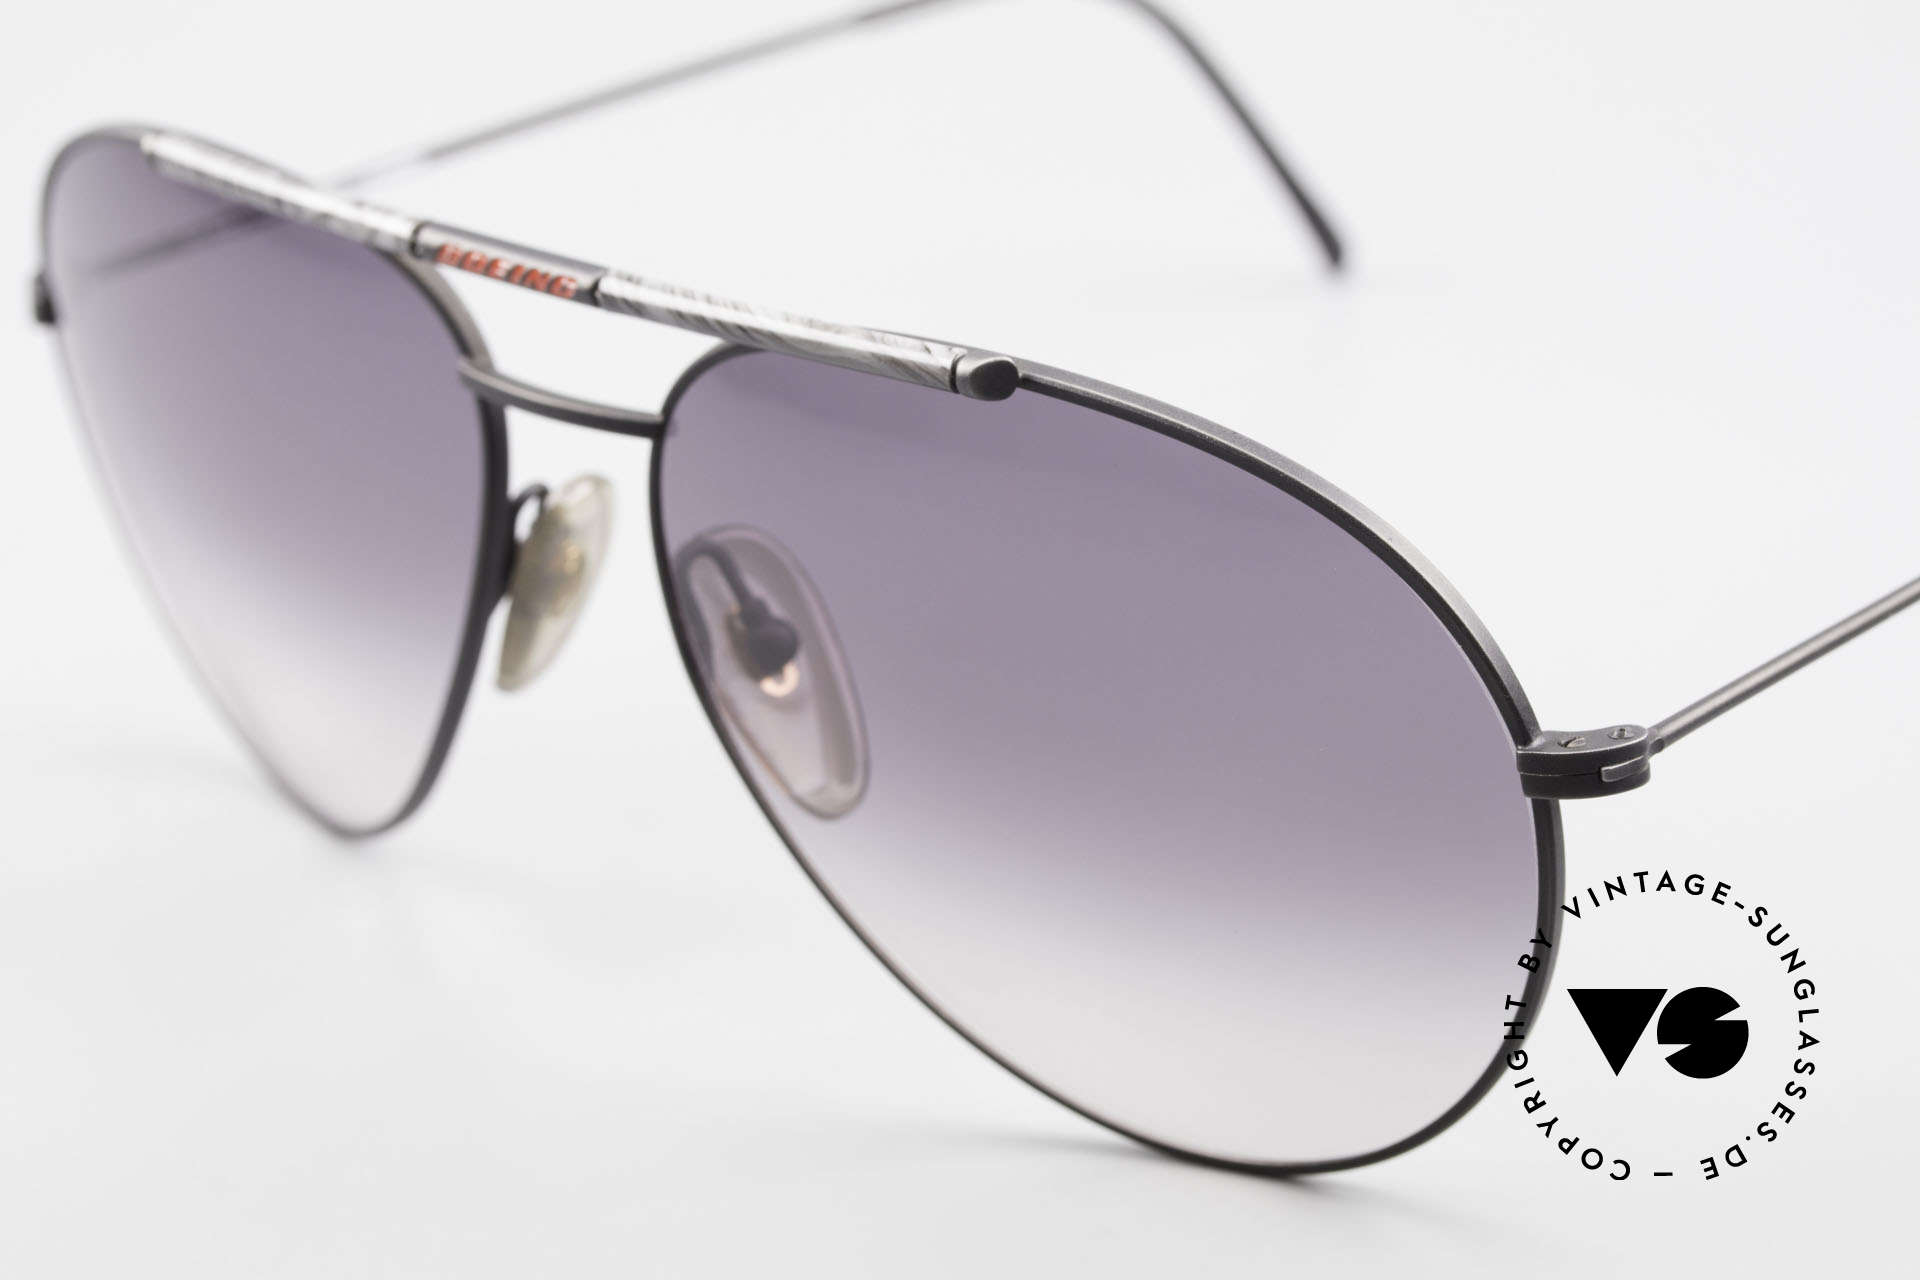 Boeing 5706 Rare 80s Aviator Sunglasses XL, 'large' 63/15 size in the 80's = X-Large size, today, Made for Men